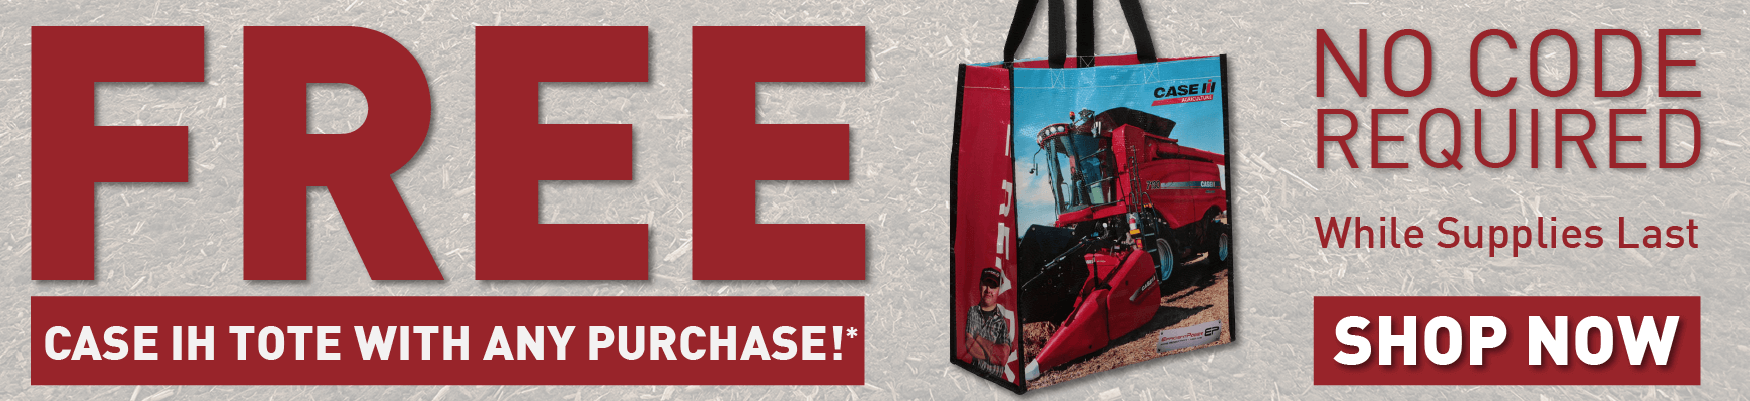 FREE TOTE WITH ANY ORDER!